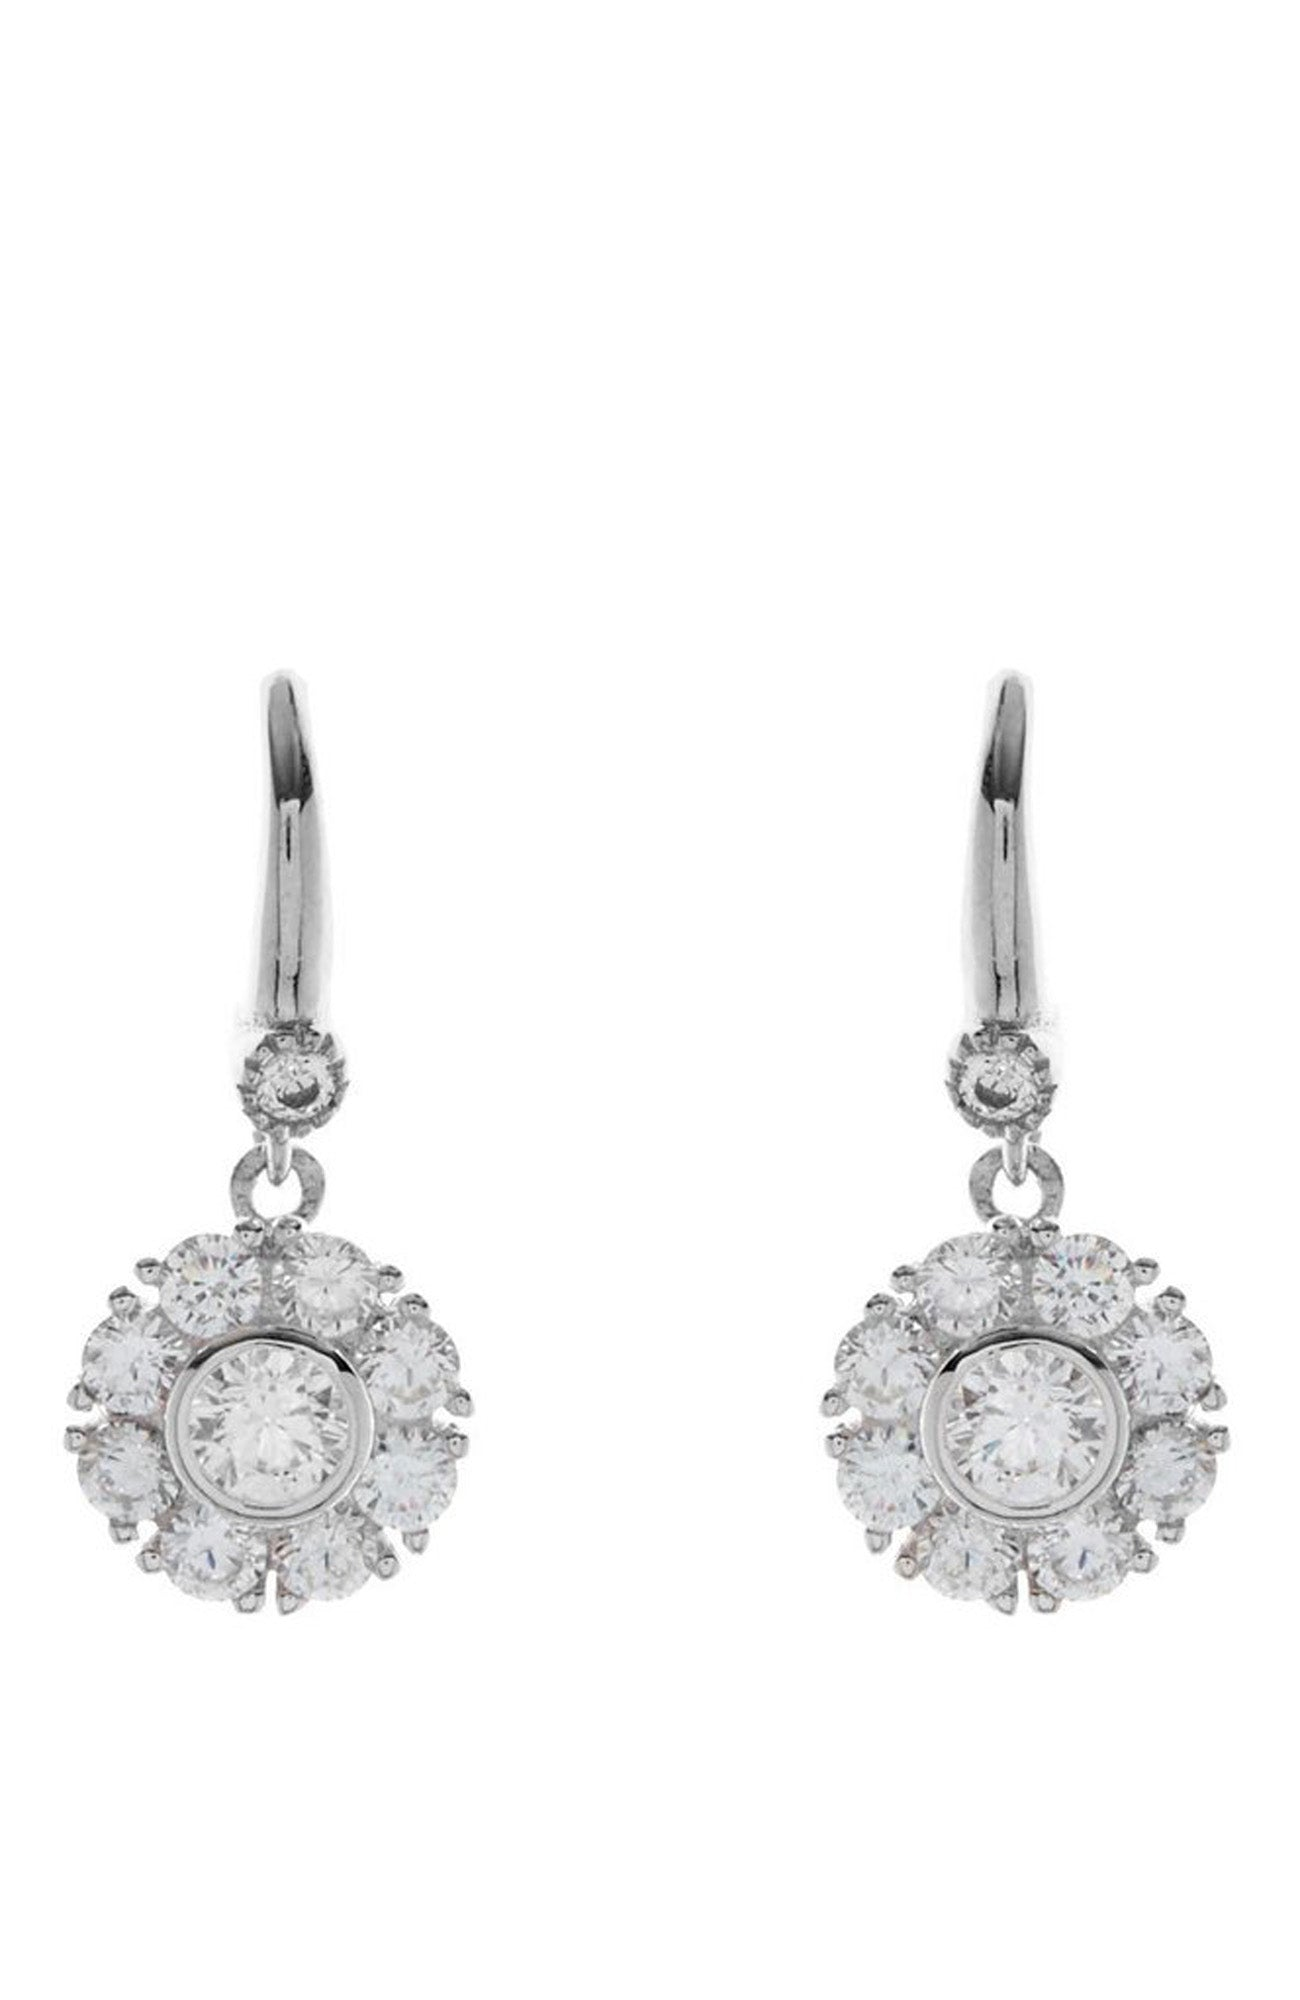 SILVER CUBIC ZIRCONIA FLOWER EARRINGS ON HOOK